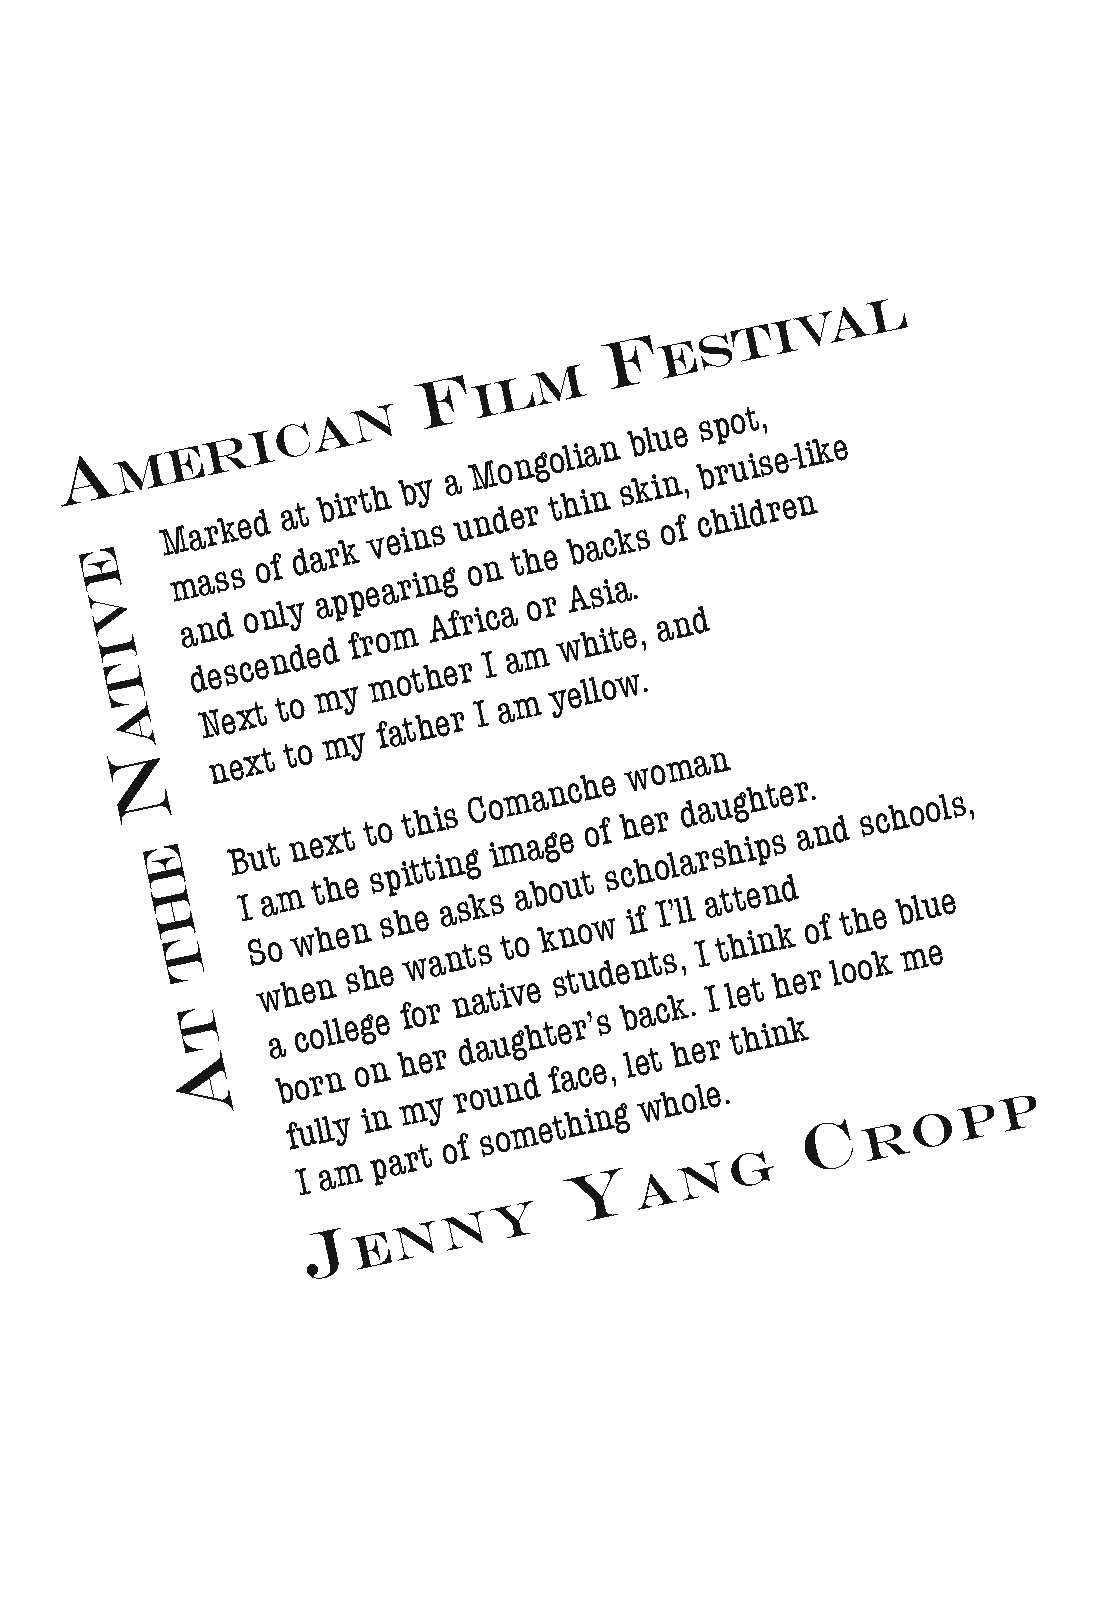 Architrave Press At The Native American Film Festival By Jenny Yang Cropp Online Store